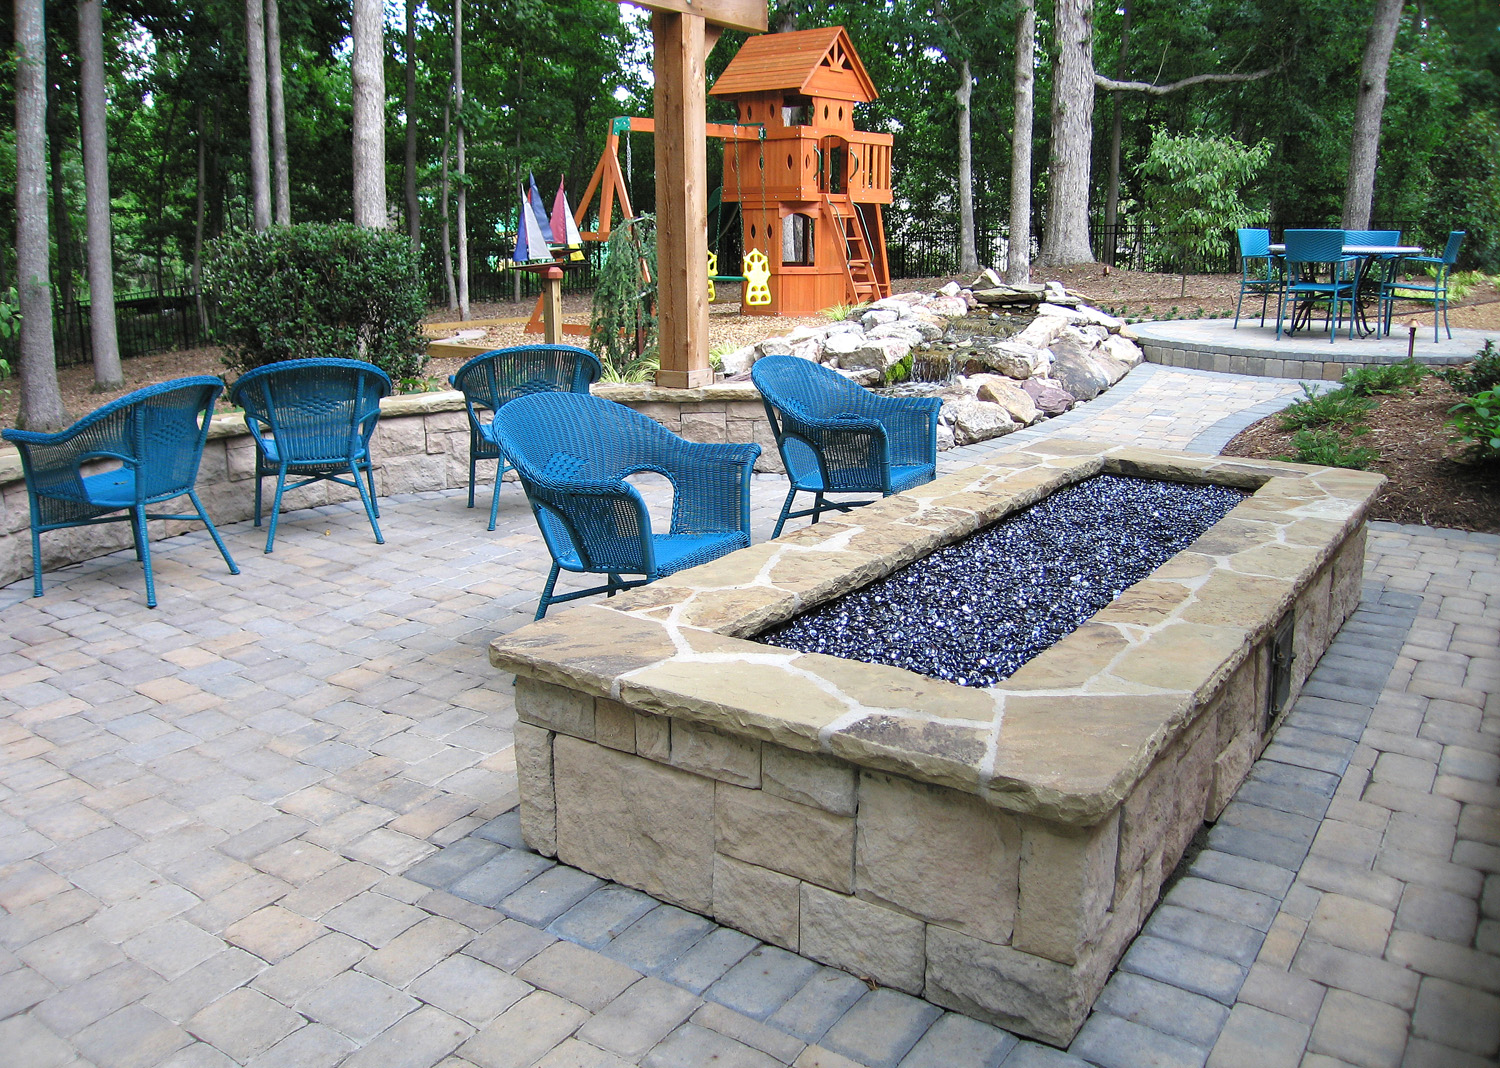 Ribbon fire feature, hardscape walkways and patio, waterfall and jungle gym playground